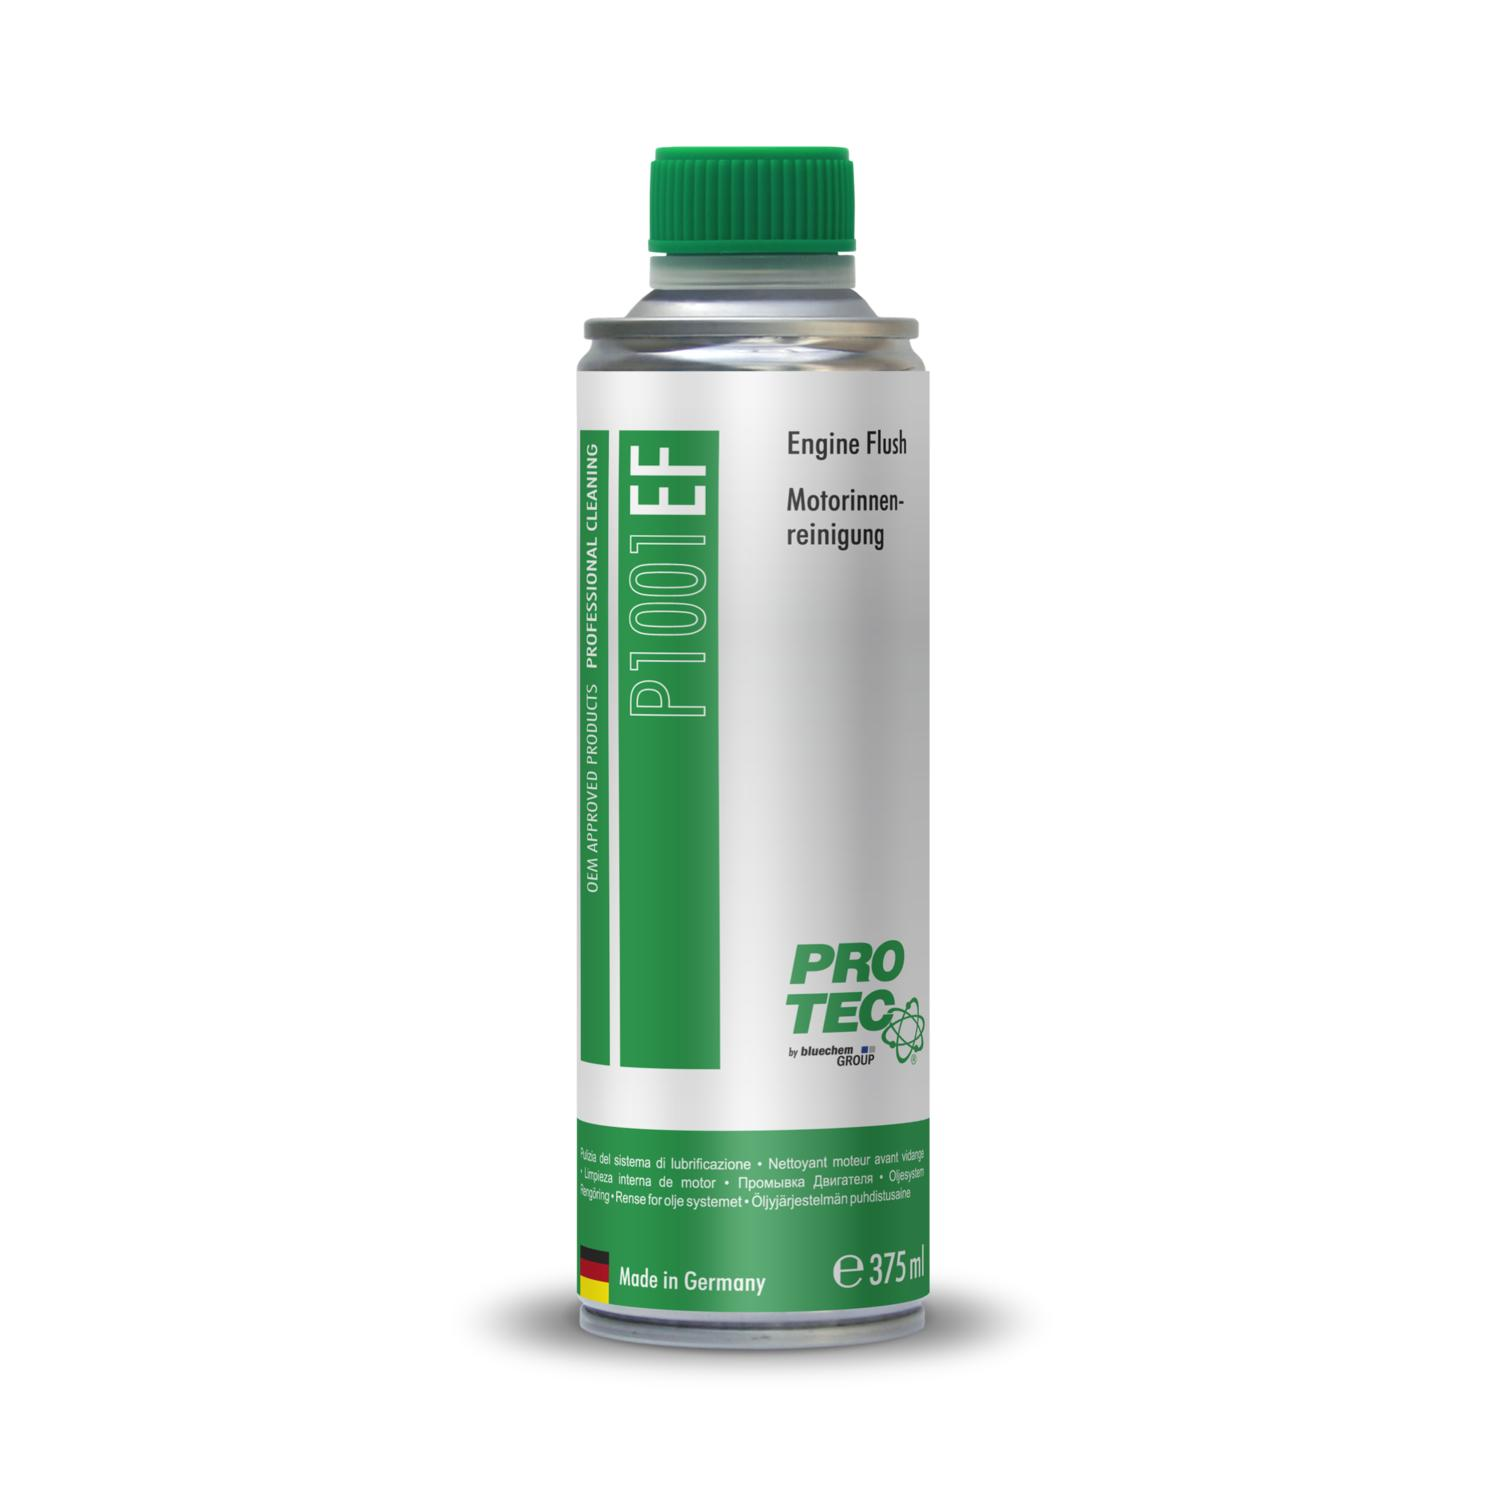 Pro-tec Engine Flush EF (375 ml)